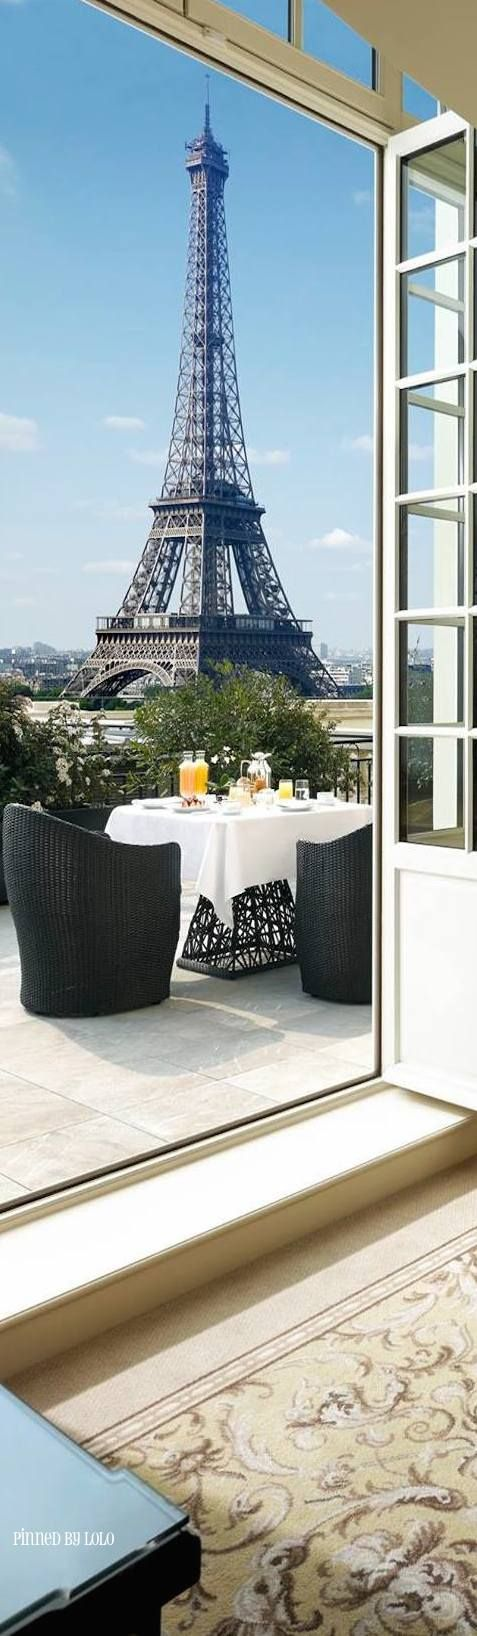 Shangri-La Hotel...Paris Imagine...breakfast with this view!!